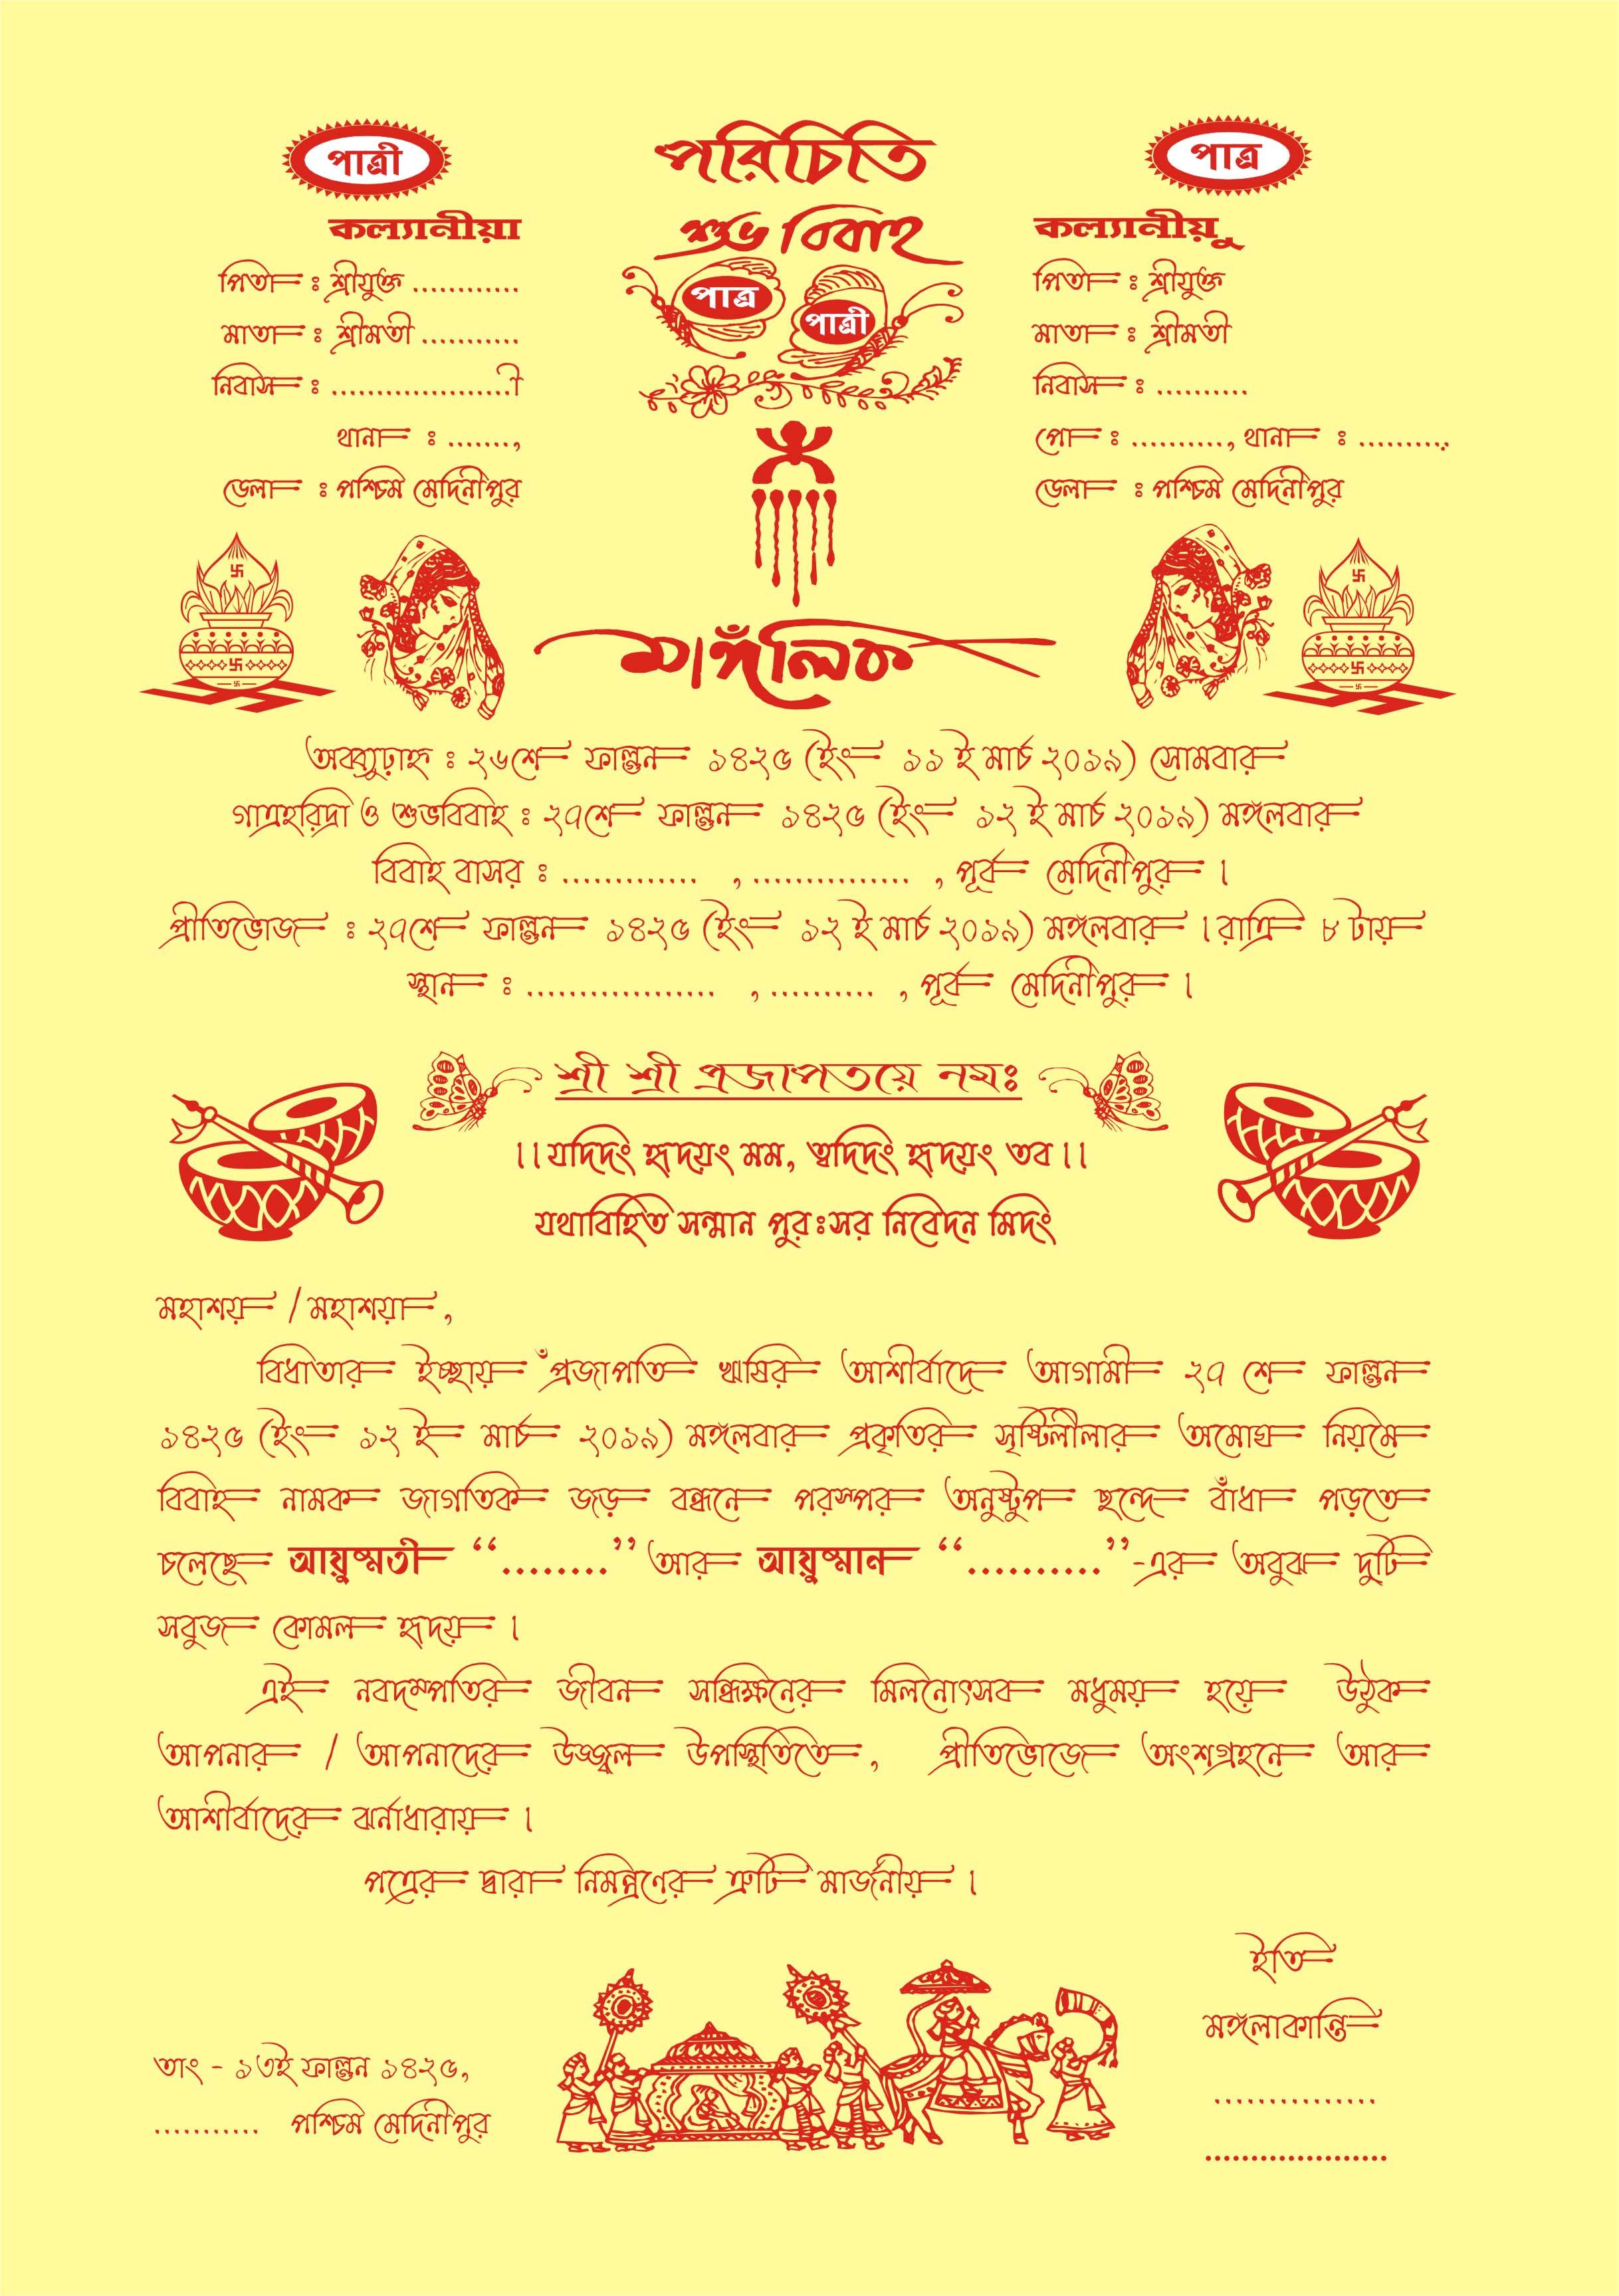 20 Format Of Wedding Invitation Card Writing In Bengali And Review In 2020 Marriage Cards Marriage Card Format Wedding Invitation Cards